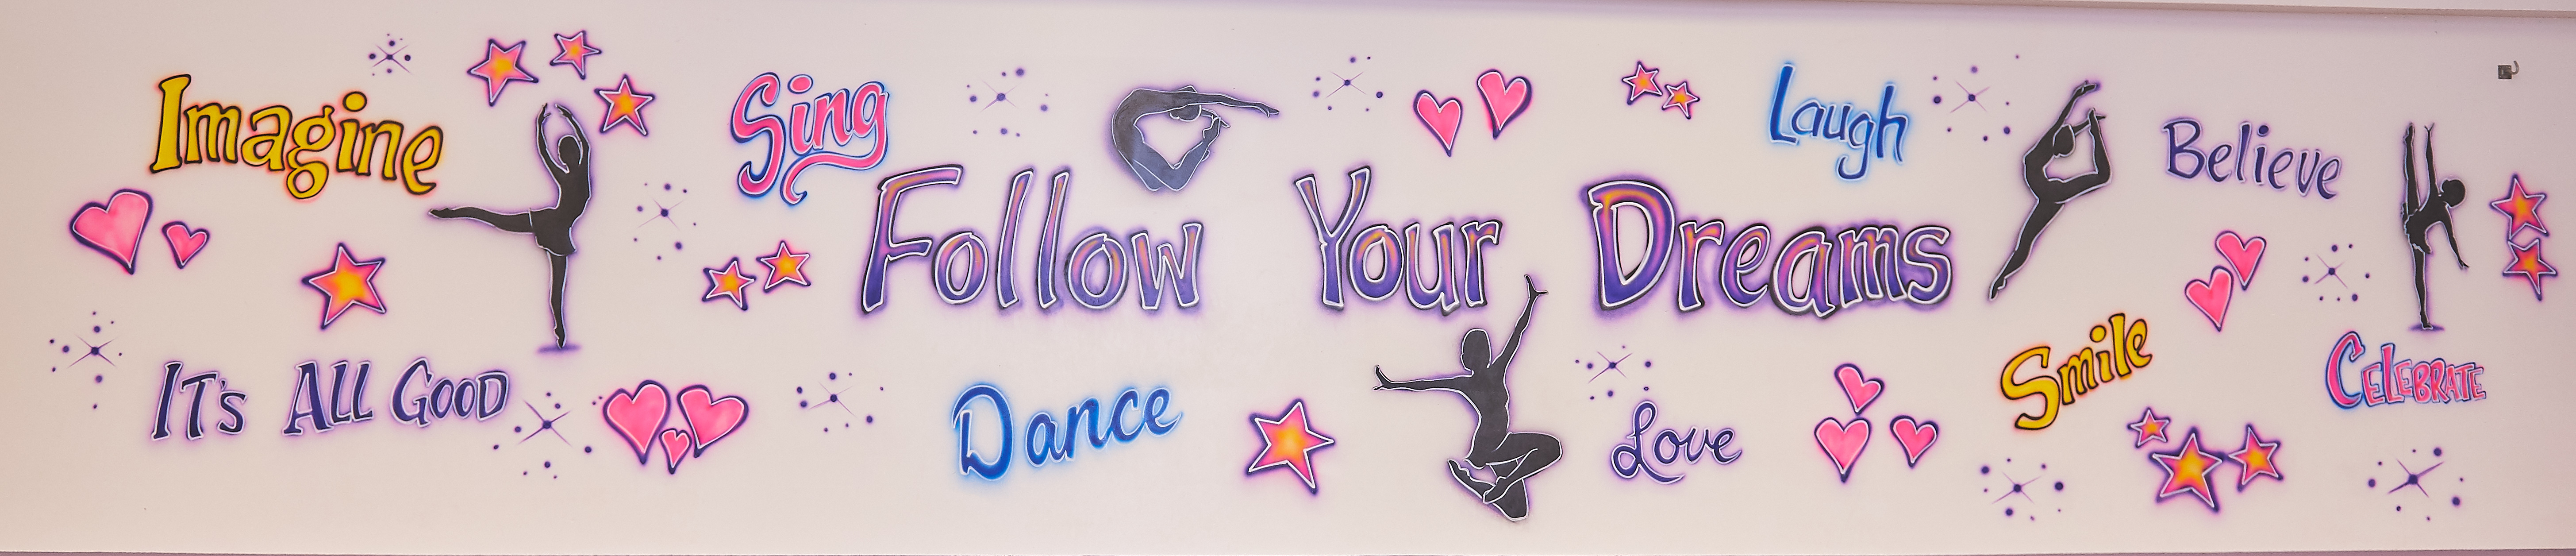 Follow Your Dreams at Dance Workshop by Shari